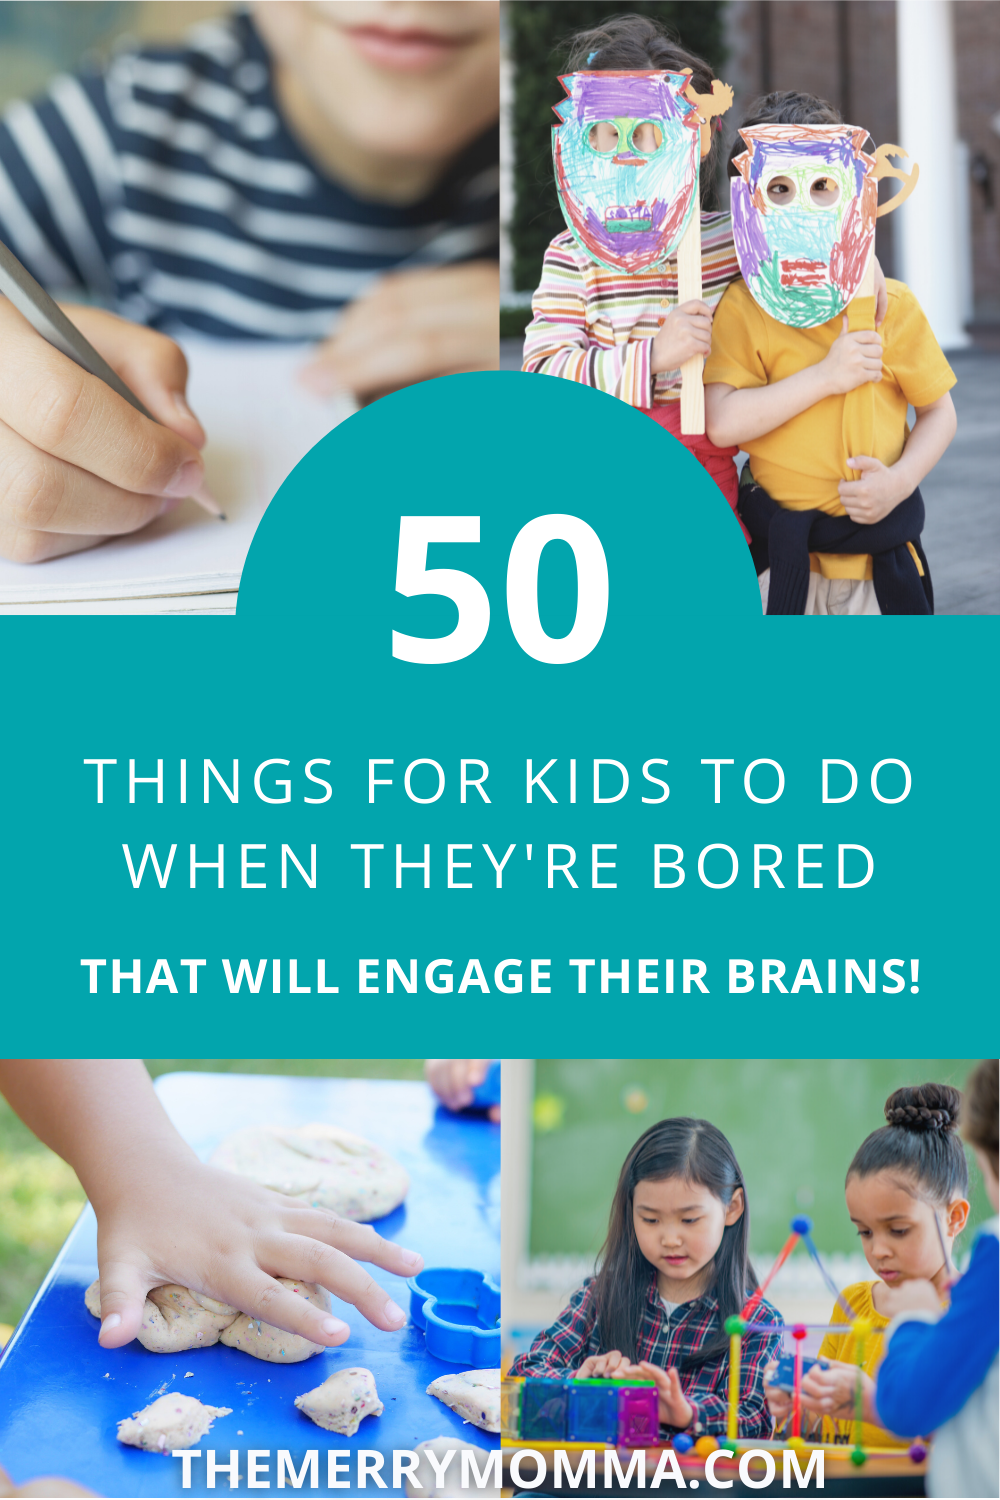 """Pin """"50 Things for Kids to Do When They're Bored"""" on Pinterest!"""